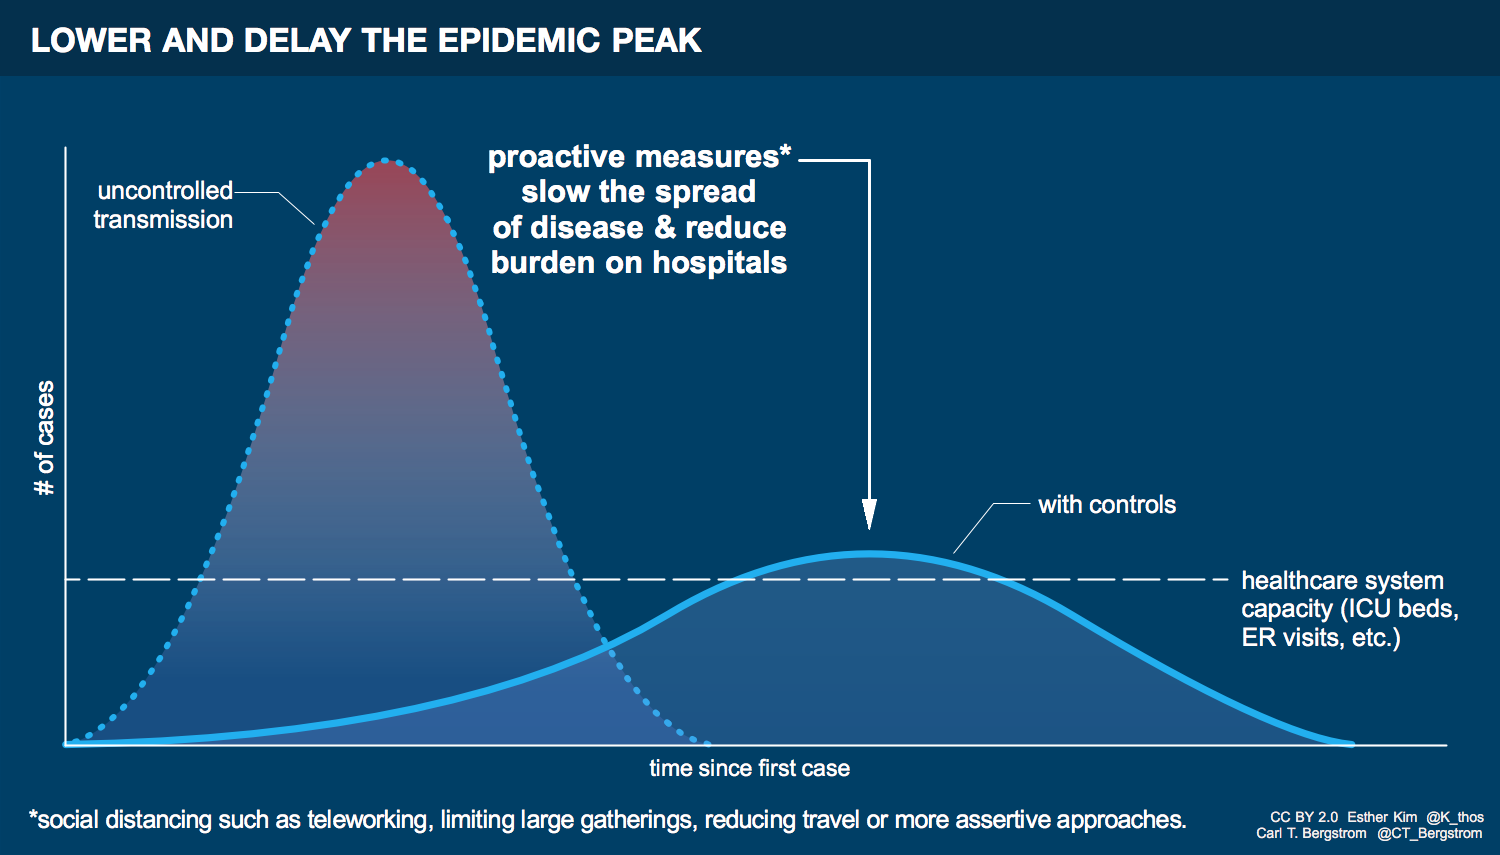 Graphic showing the difference between uncontrolled transmission and using protective measures such as social distancing to lower and delay the epidemic peak